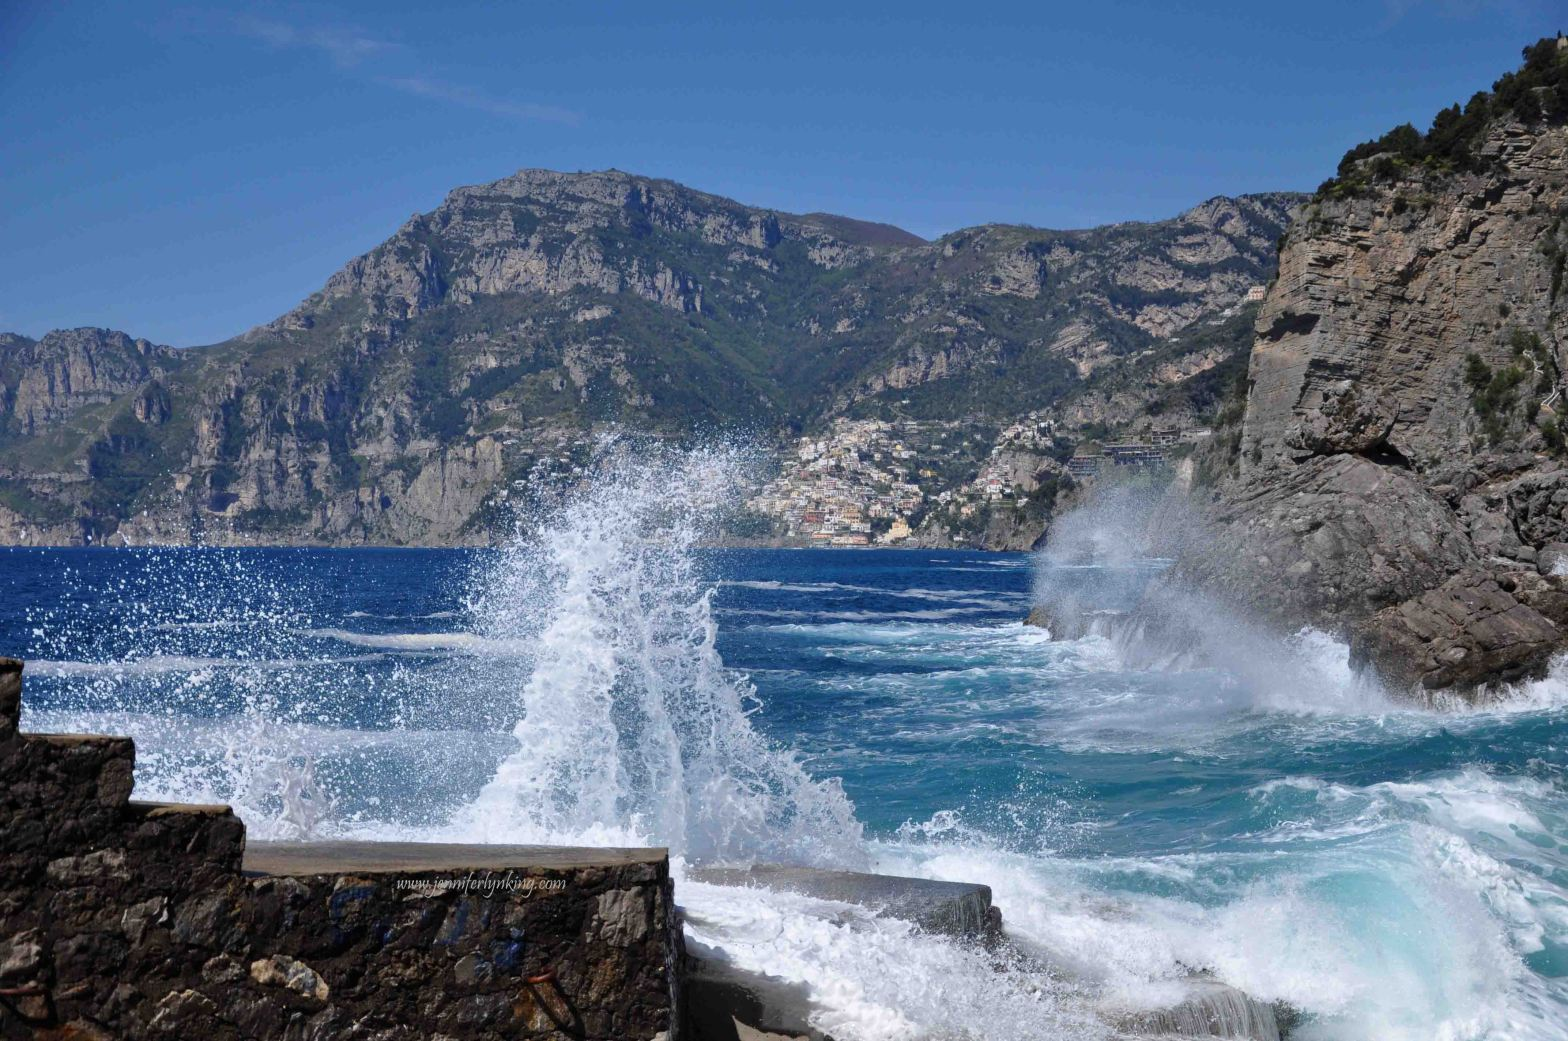 Waves Crashing, Positano, Italy, in the background